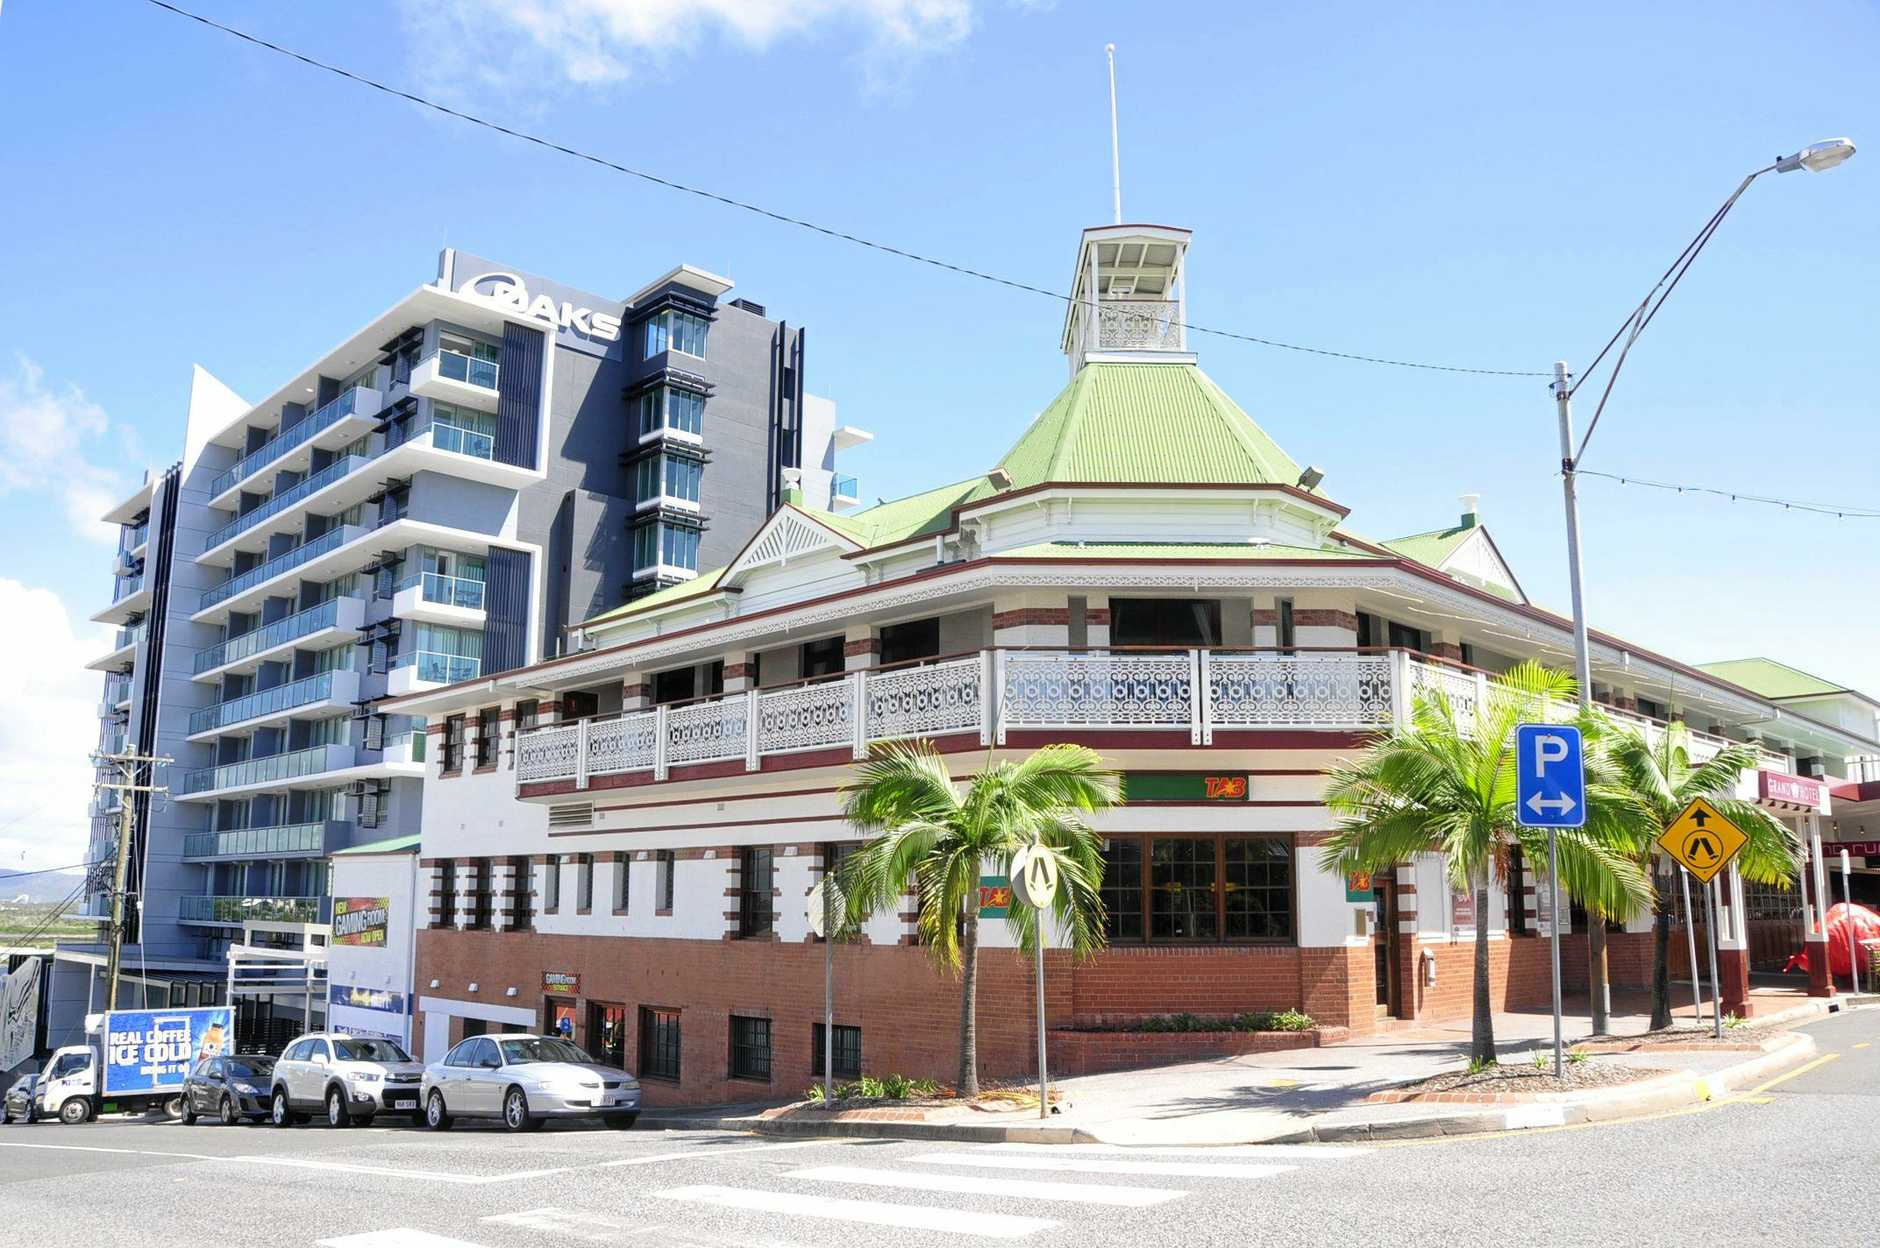 NEW BALL: The Rotary Club of Gladstone is holding its first Gangsters and Flappers Ball at the Oaks Grand Hotel. INSET: Attendees can purchase souvenir glasses on the night.